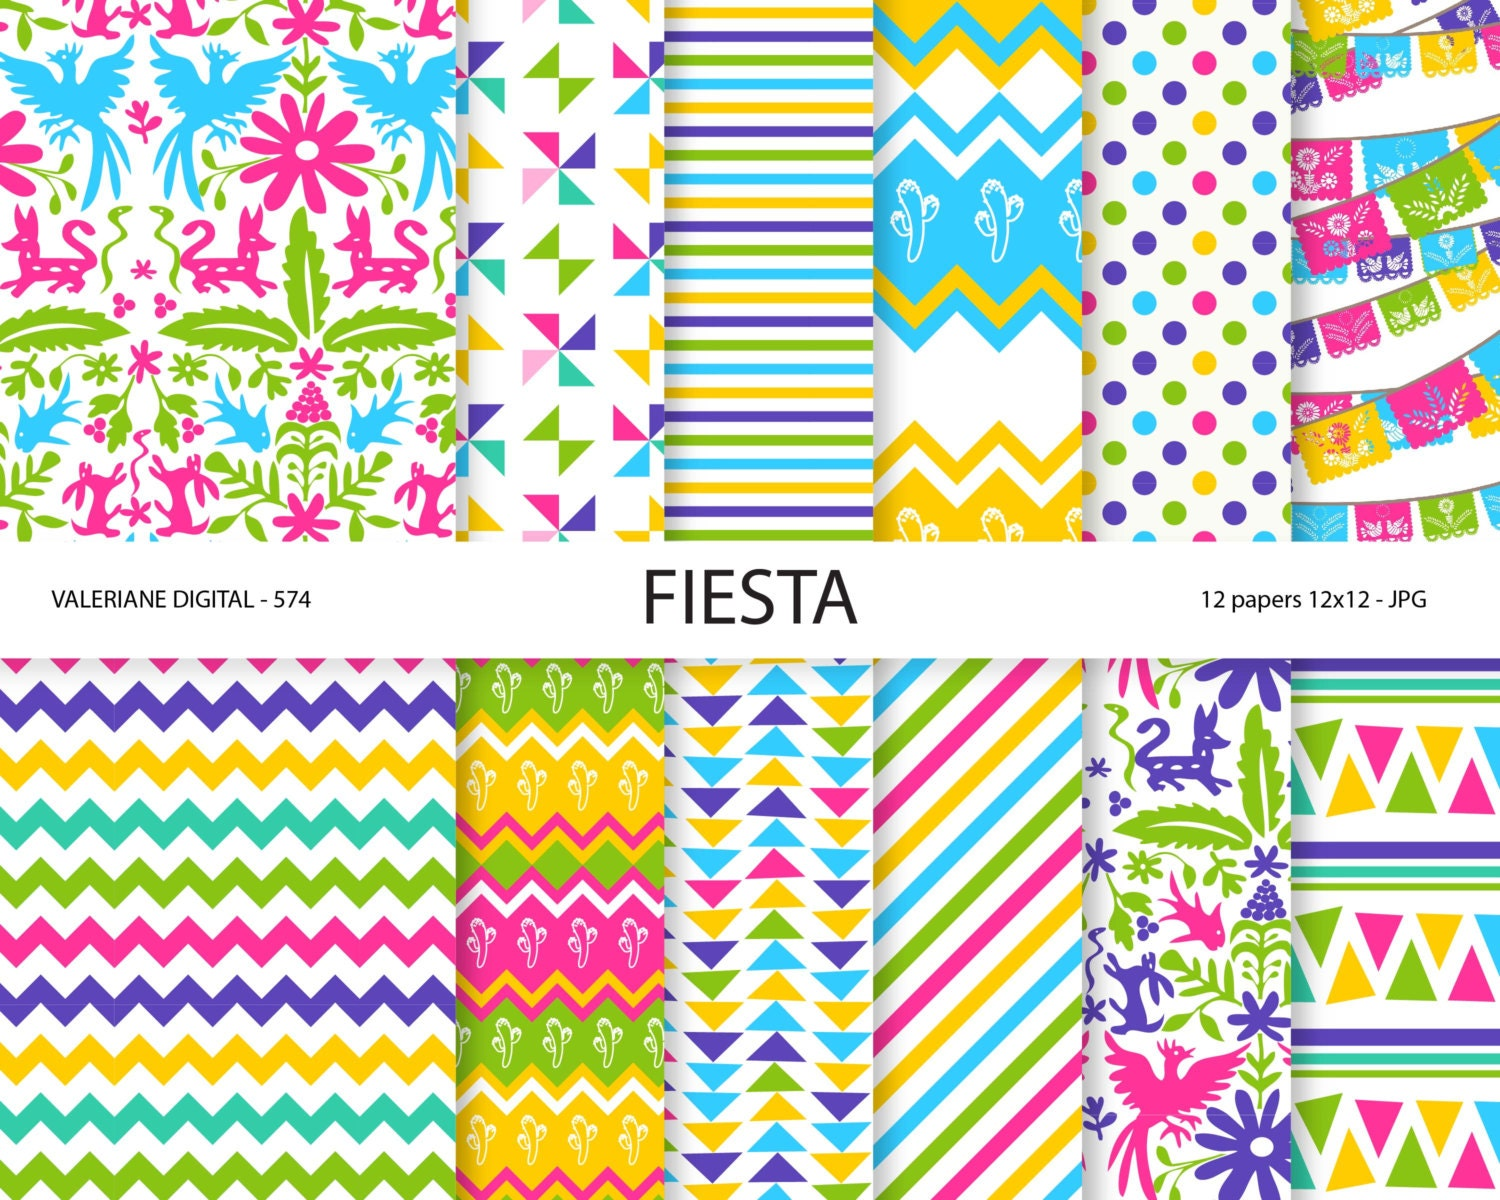 Mexican Fiesta Invitations as perfect invitations layout